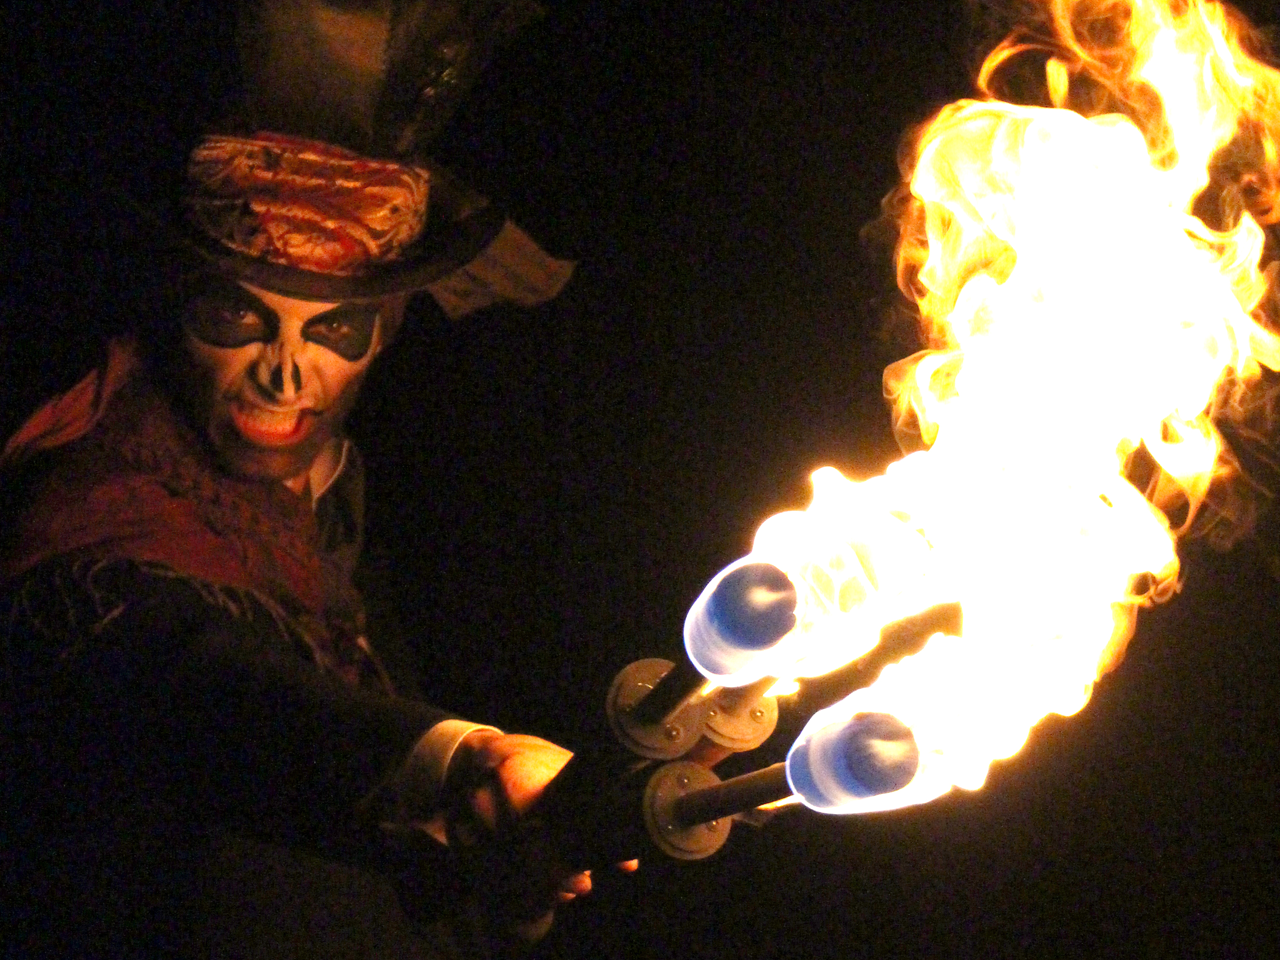 The Joker Entertainment providing entertainment for Halloween. Specialising with Fire Entertainment, Fire Juggling, Glow and scary characters, walkabout entertainment.